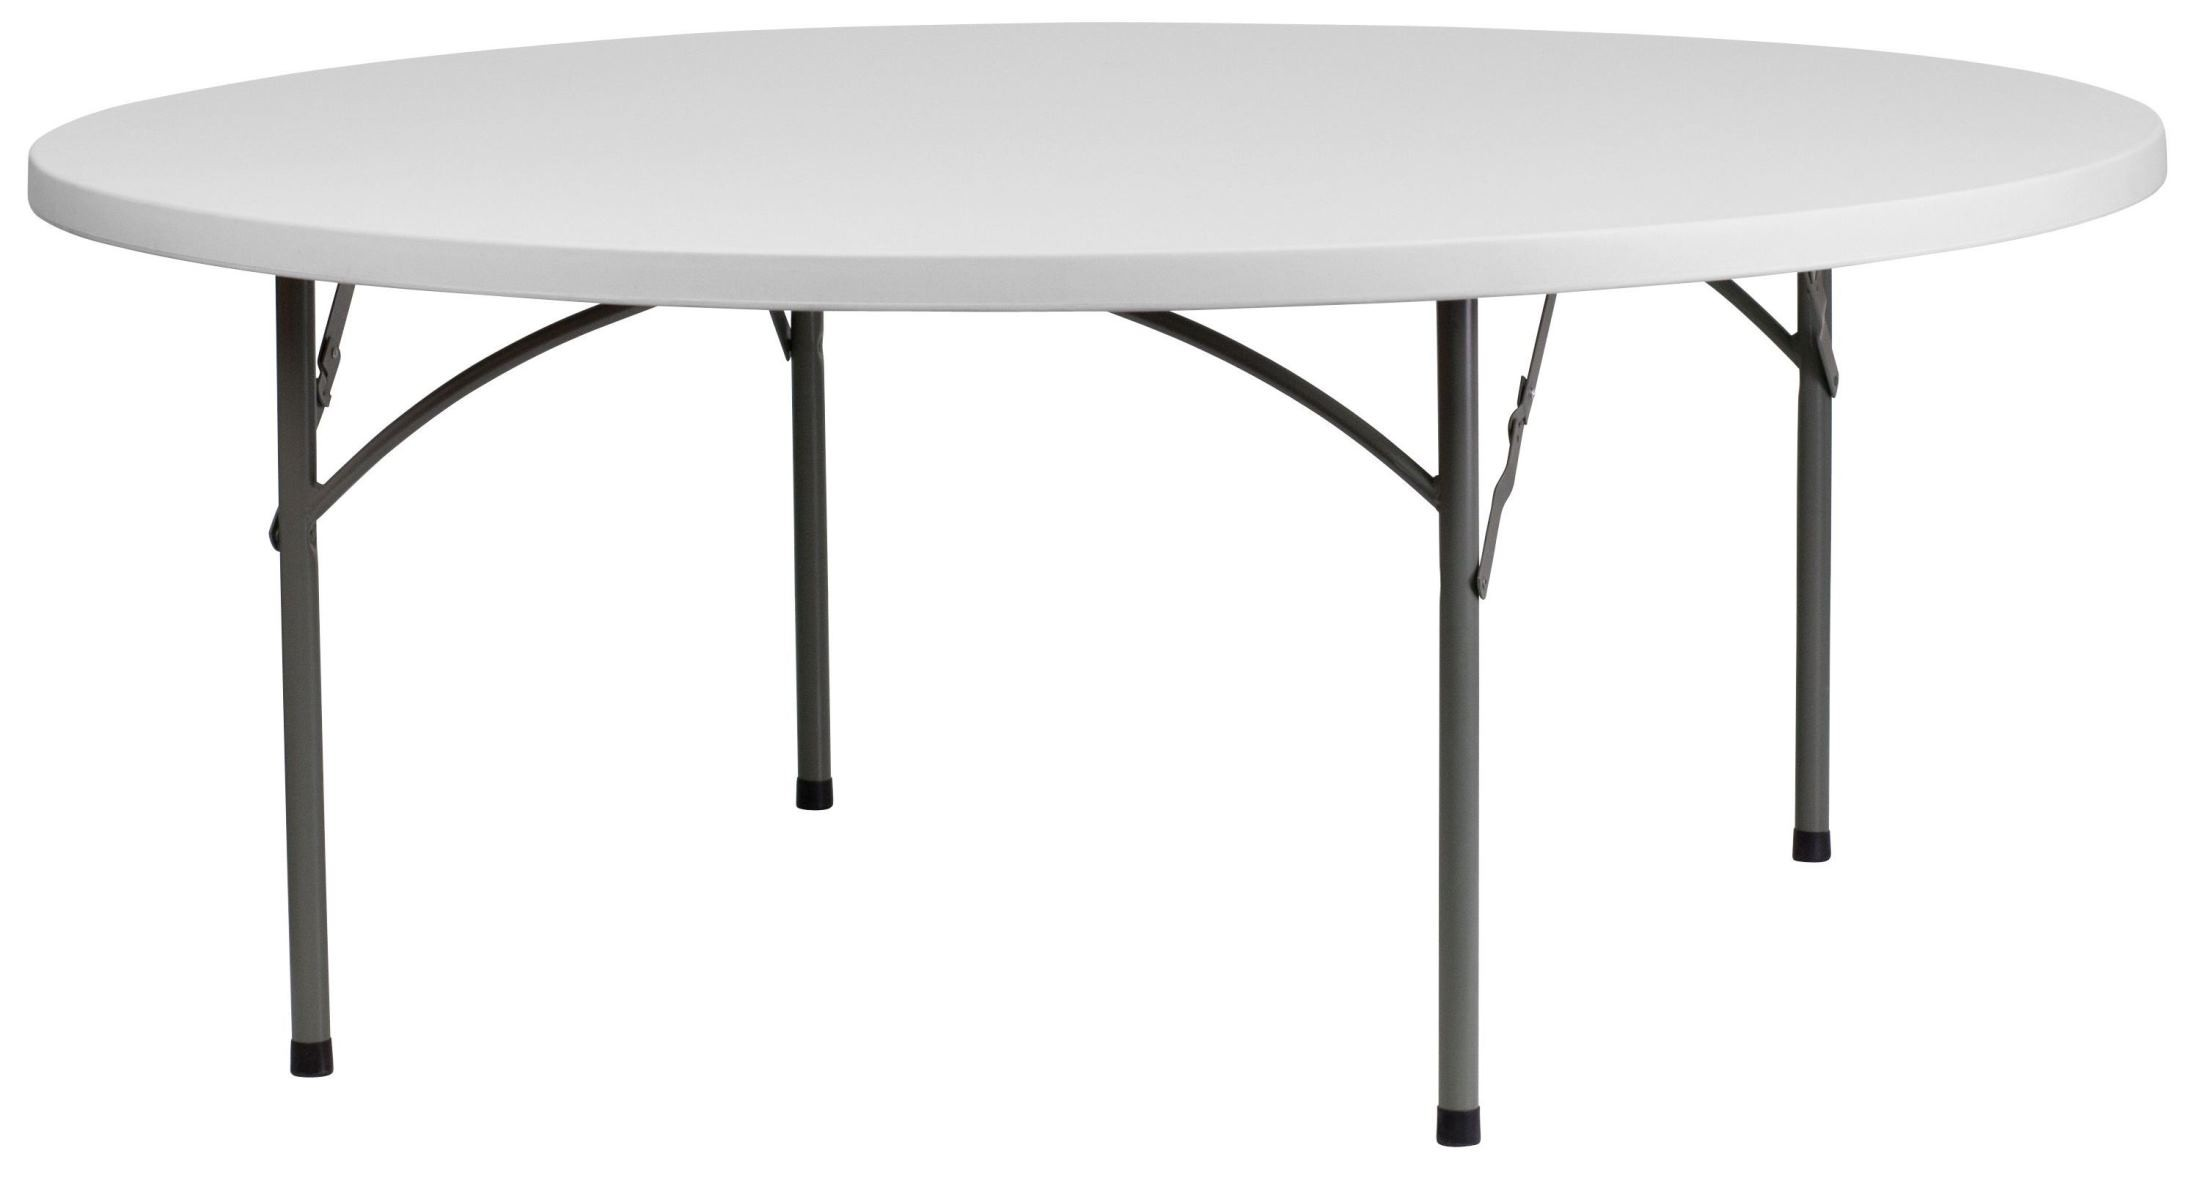 rb 72r gg 72 round granite white plastic folding table from renegade rb 72r gg coleman. Black Bedroom Furniture Sets. Home Design Ideas